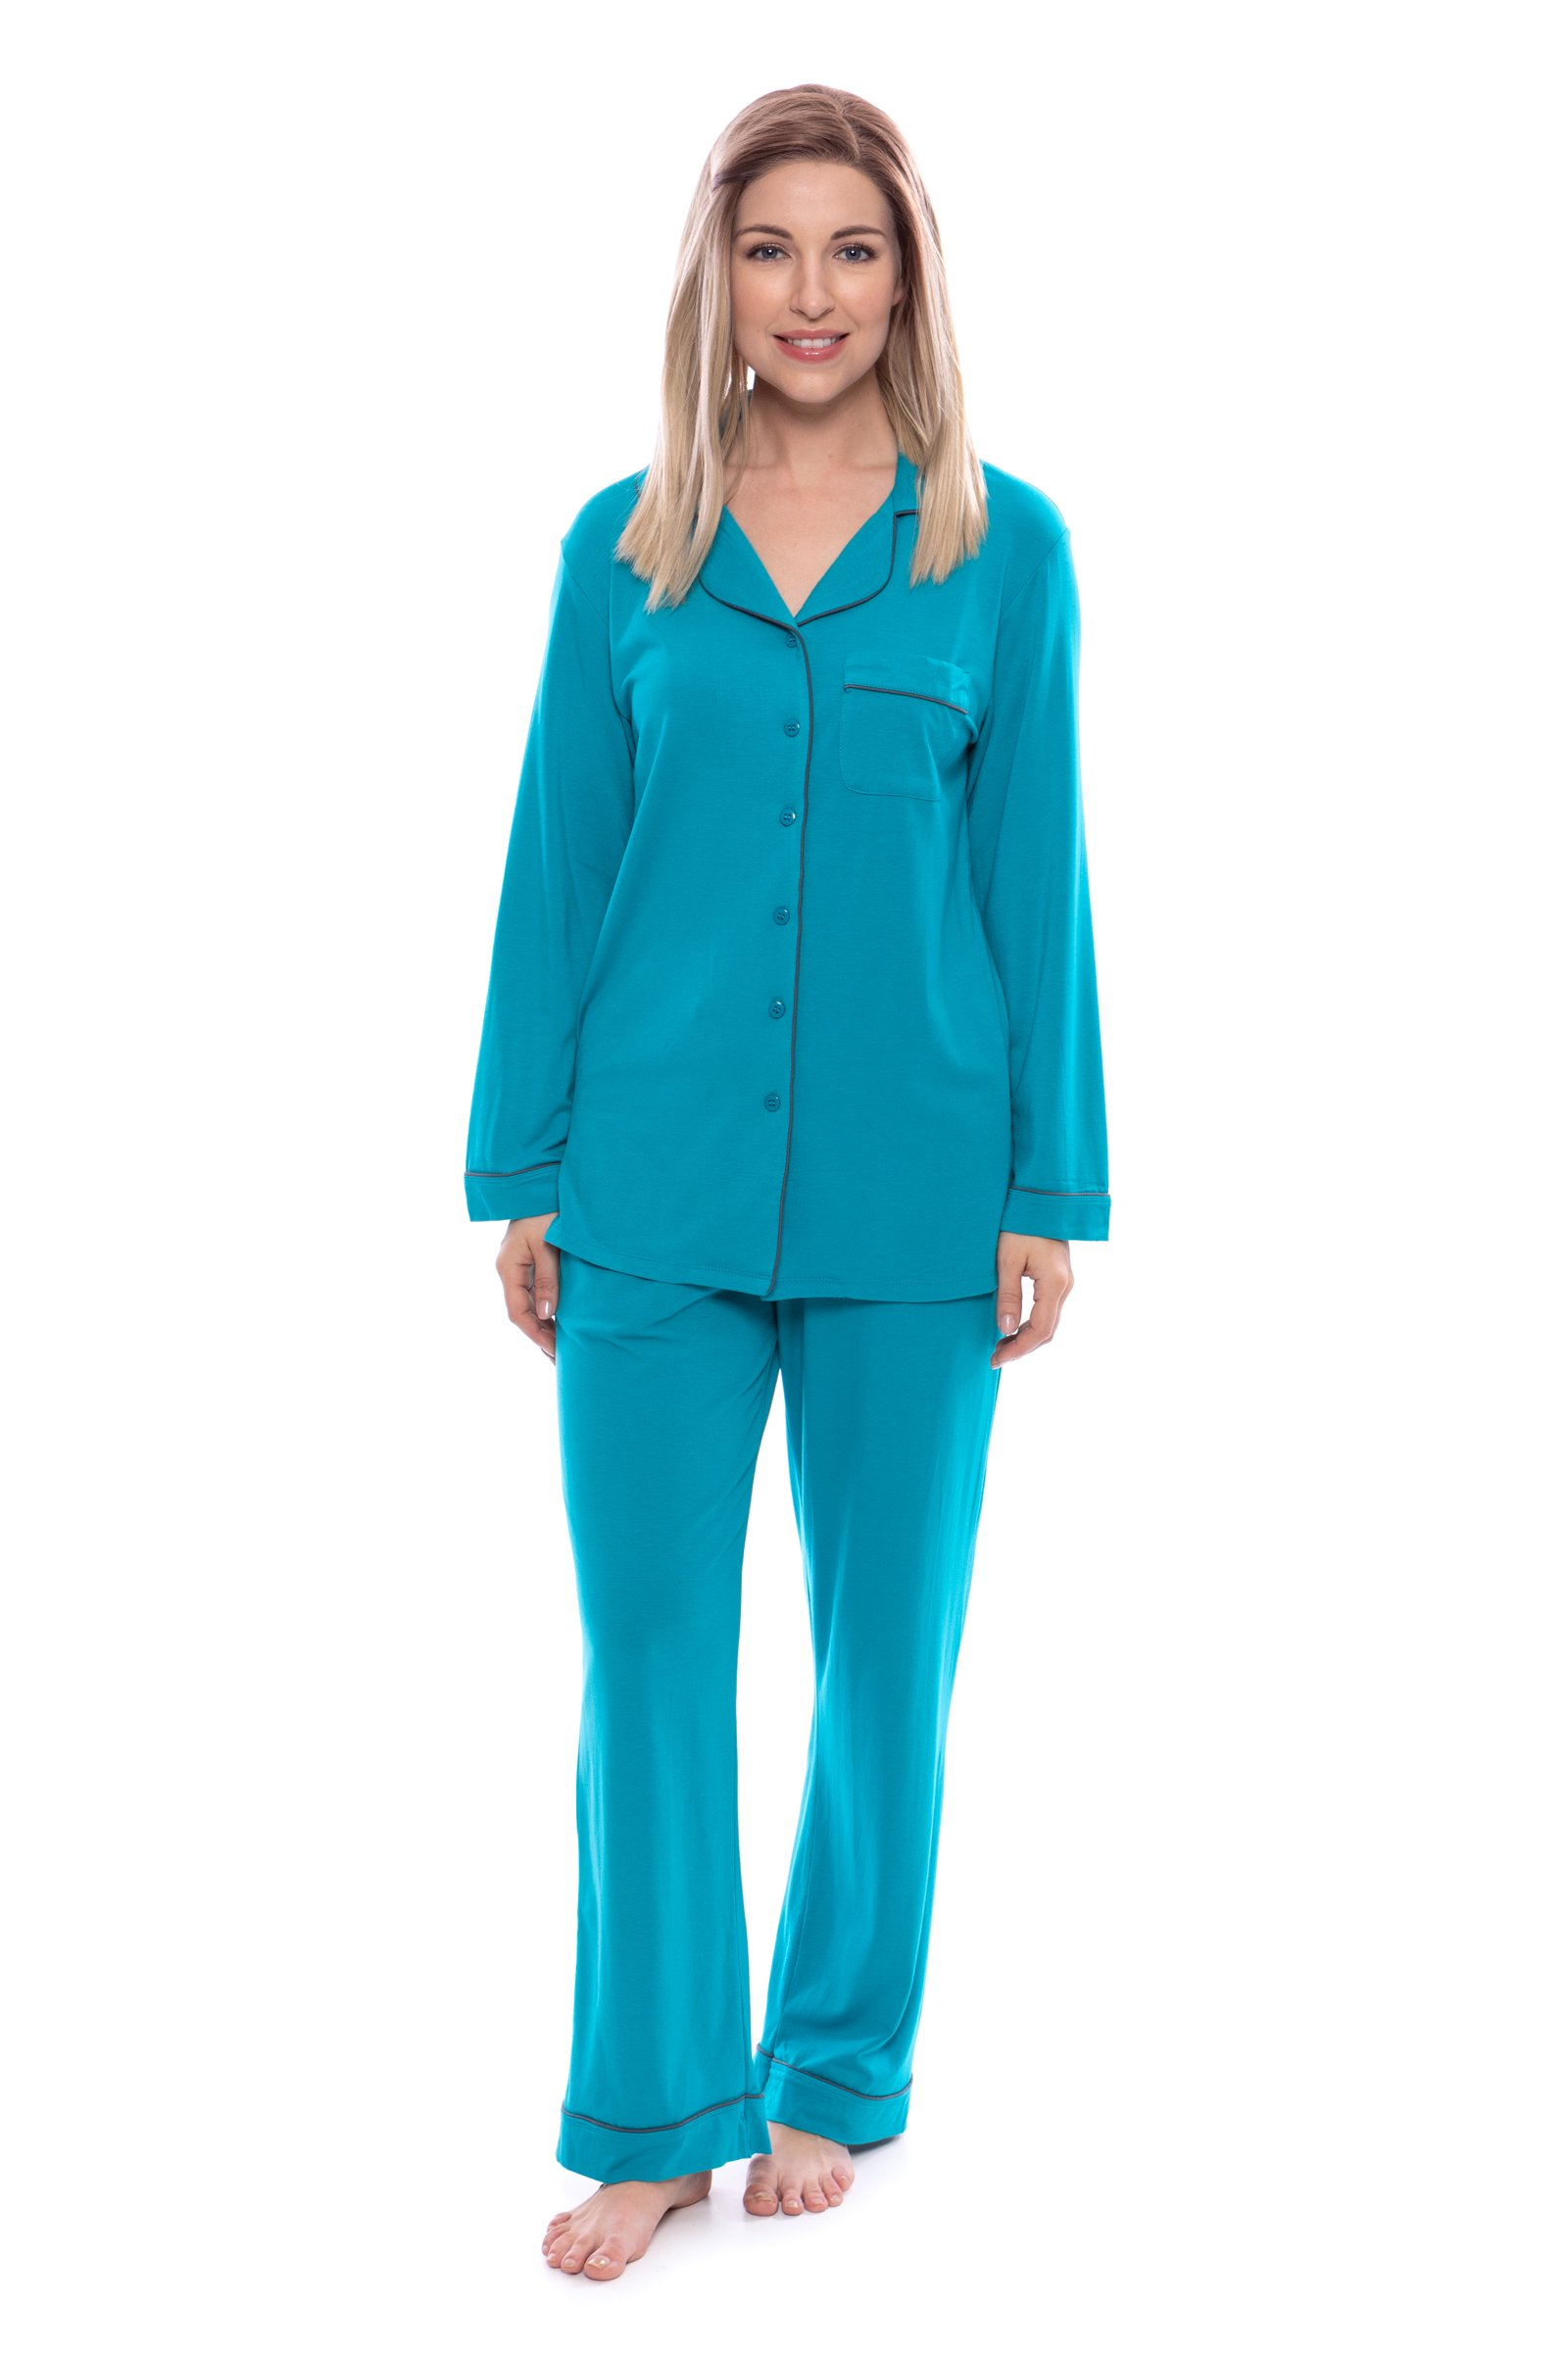 Women's Button-Up Long Sleeve Pajamas - Sleepwear set by Texere (Classicomfort, Capri Breeze, Large/Petite) Elegant Loungewear for Her WB0004-CBZ-LP